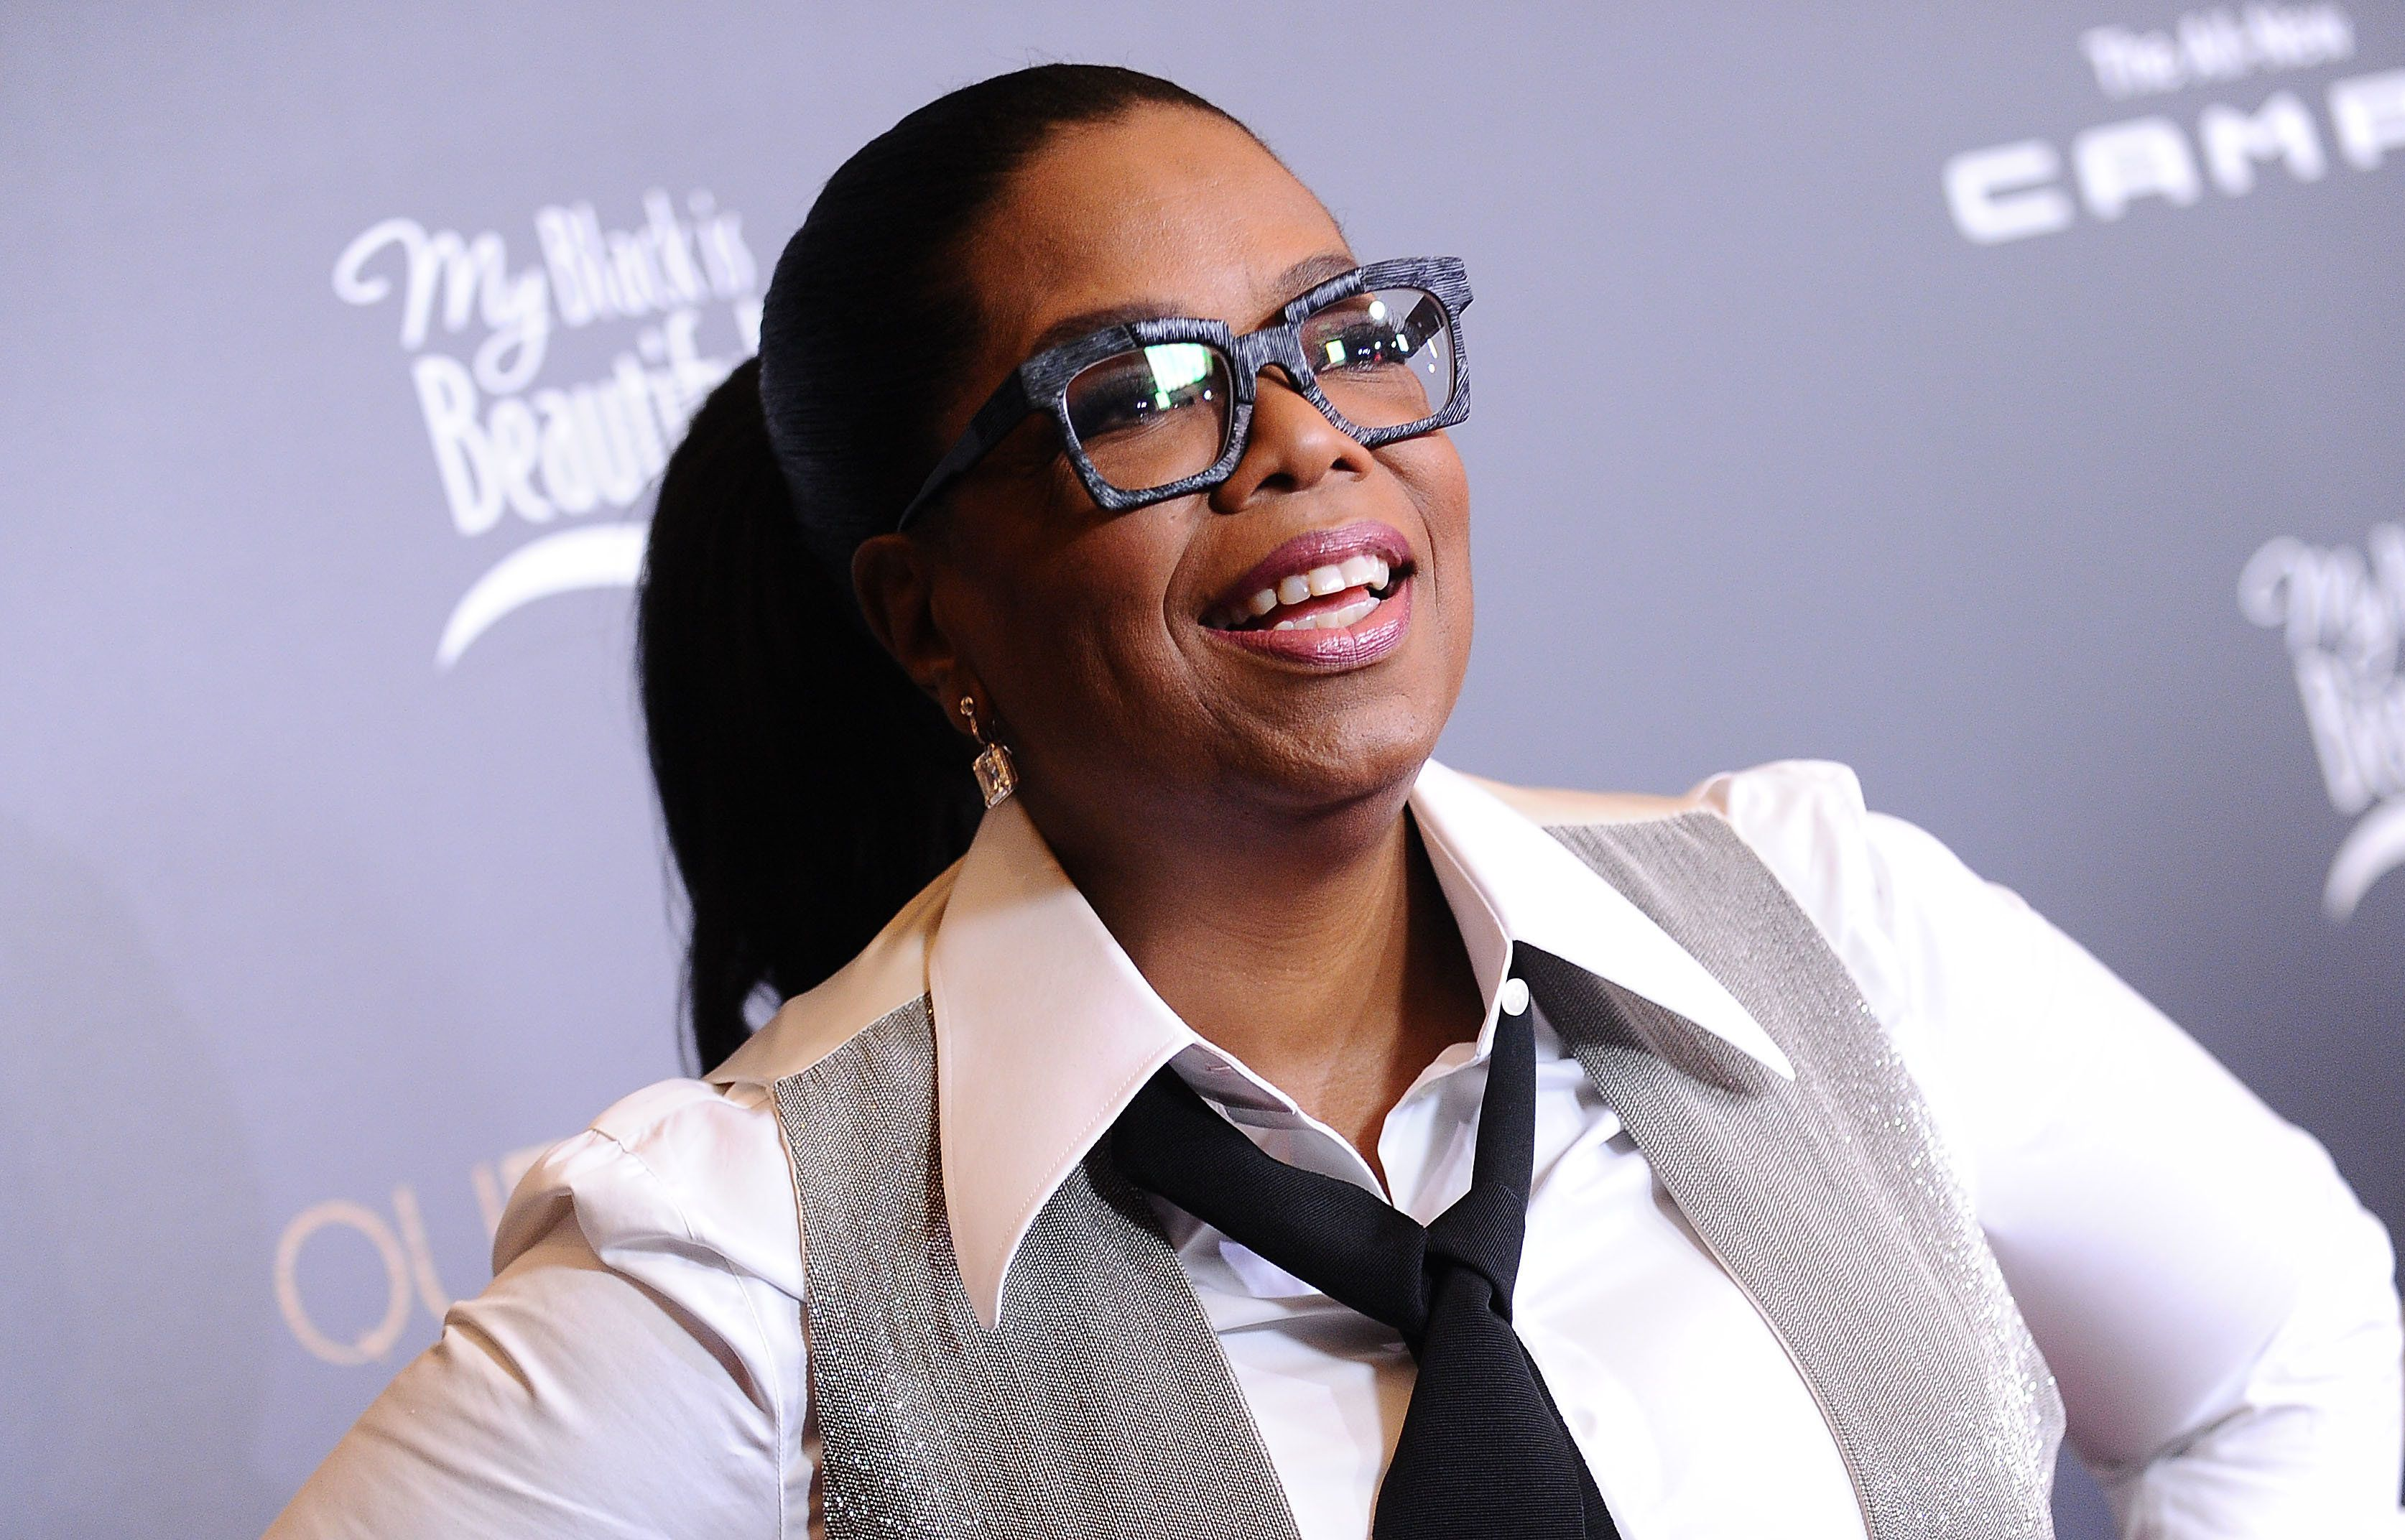 Oprah Winfrey is selling an additional 24.5 percent of her network OWN to Discovery Communications.